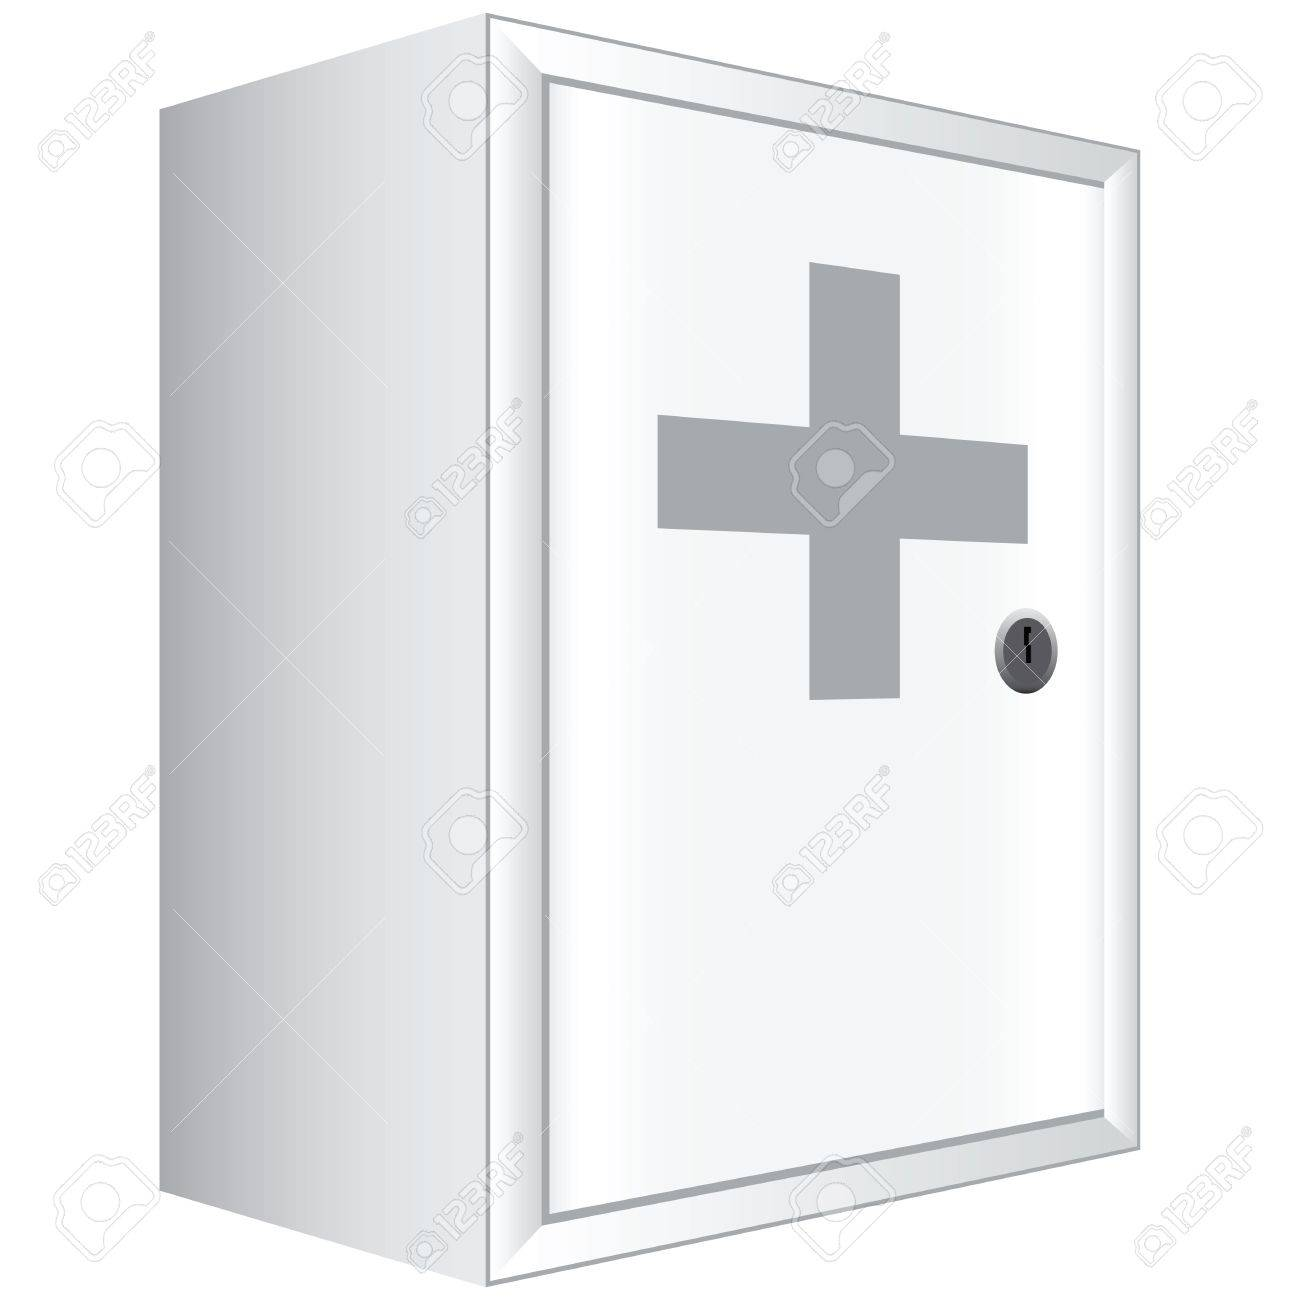 Office Lockable Cabinets Office First Aid Kit White Cabinet With Lockable Door Vector